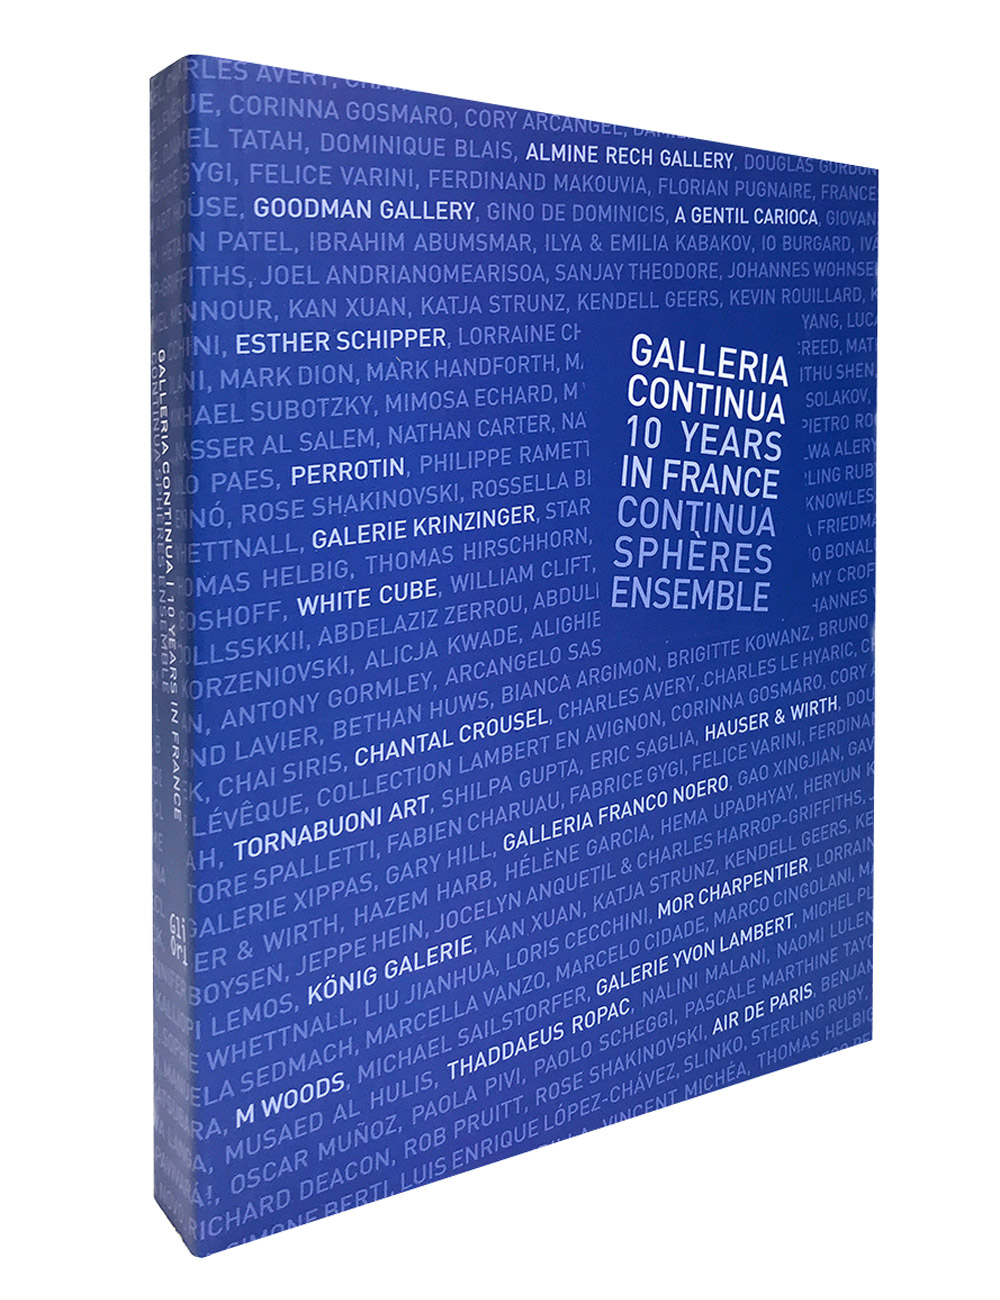 GALLERIA CONTINUA 10 YARS IN FRANCE. Continua Sphères ENSEMBLE, 2017.